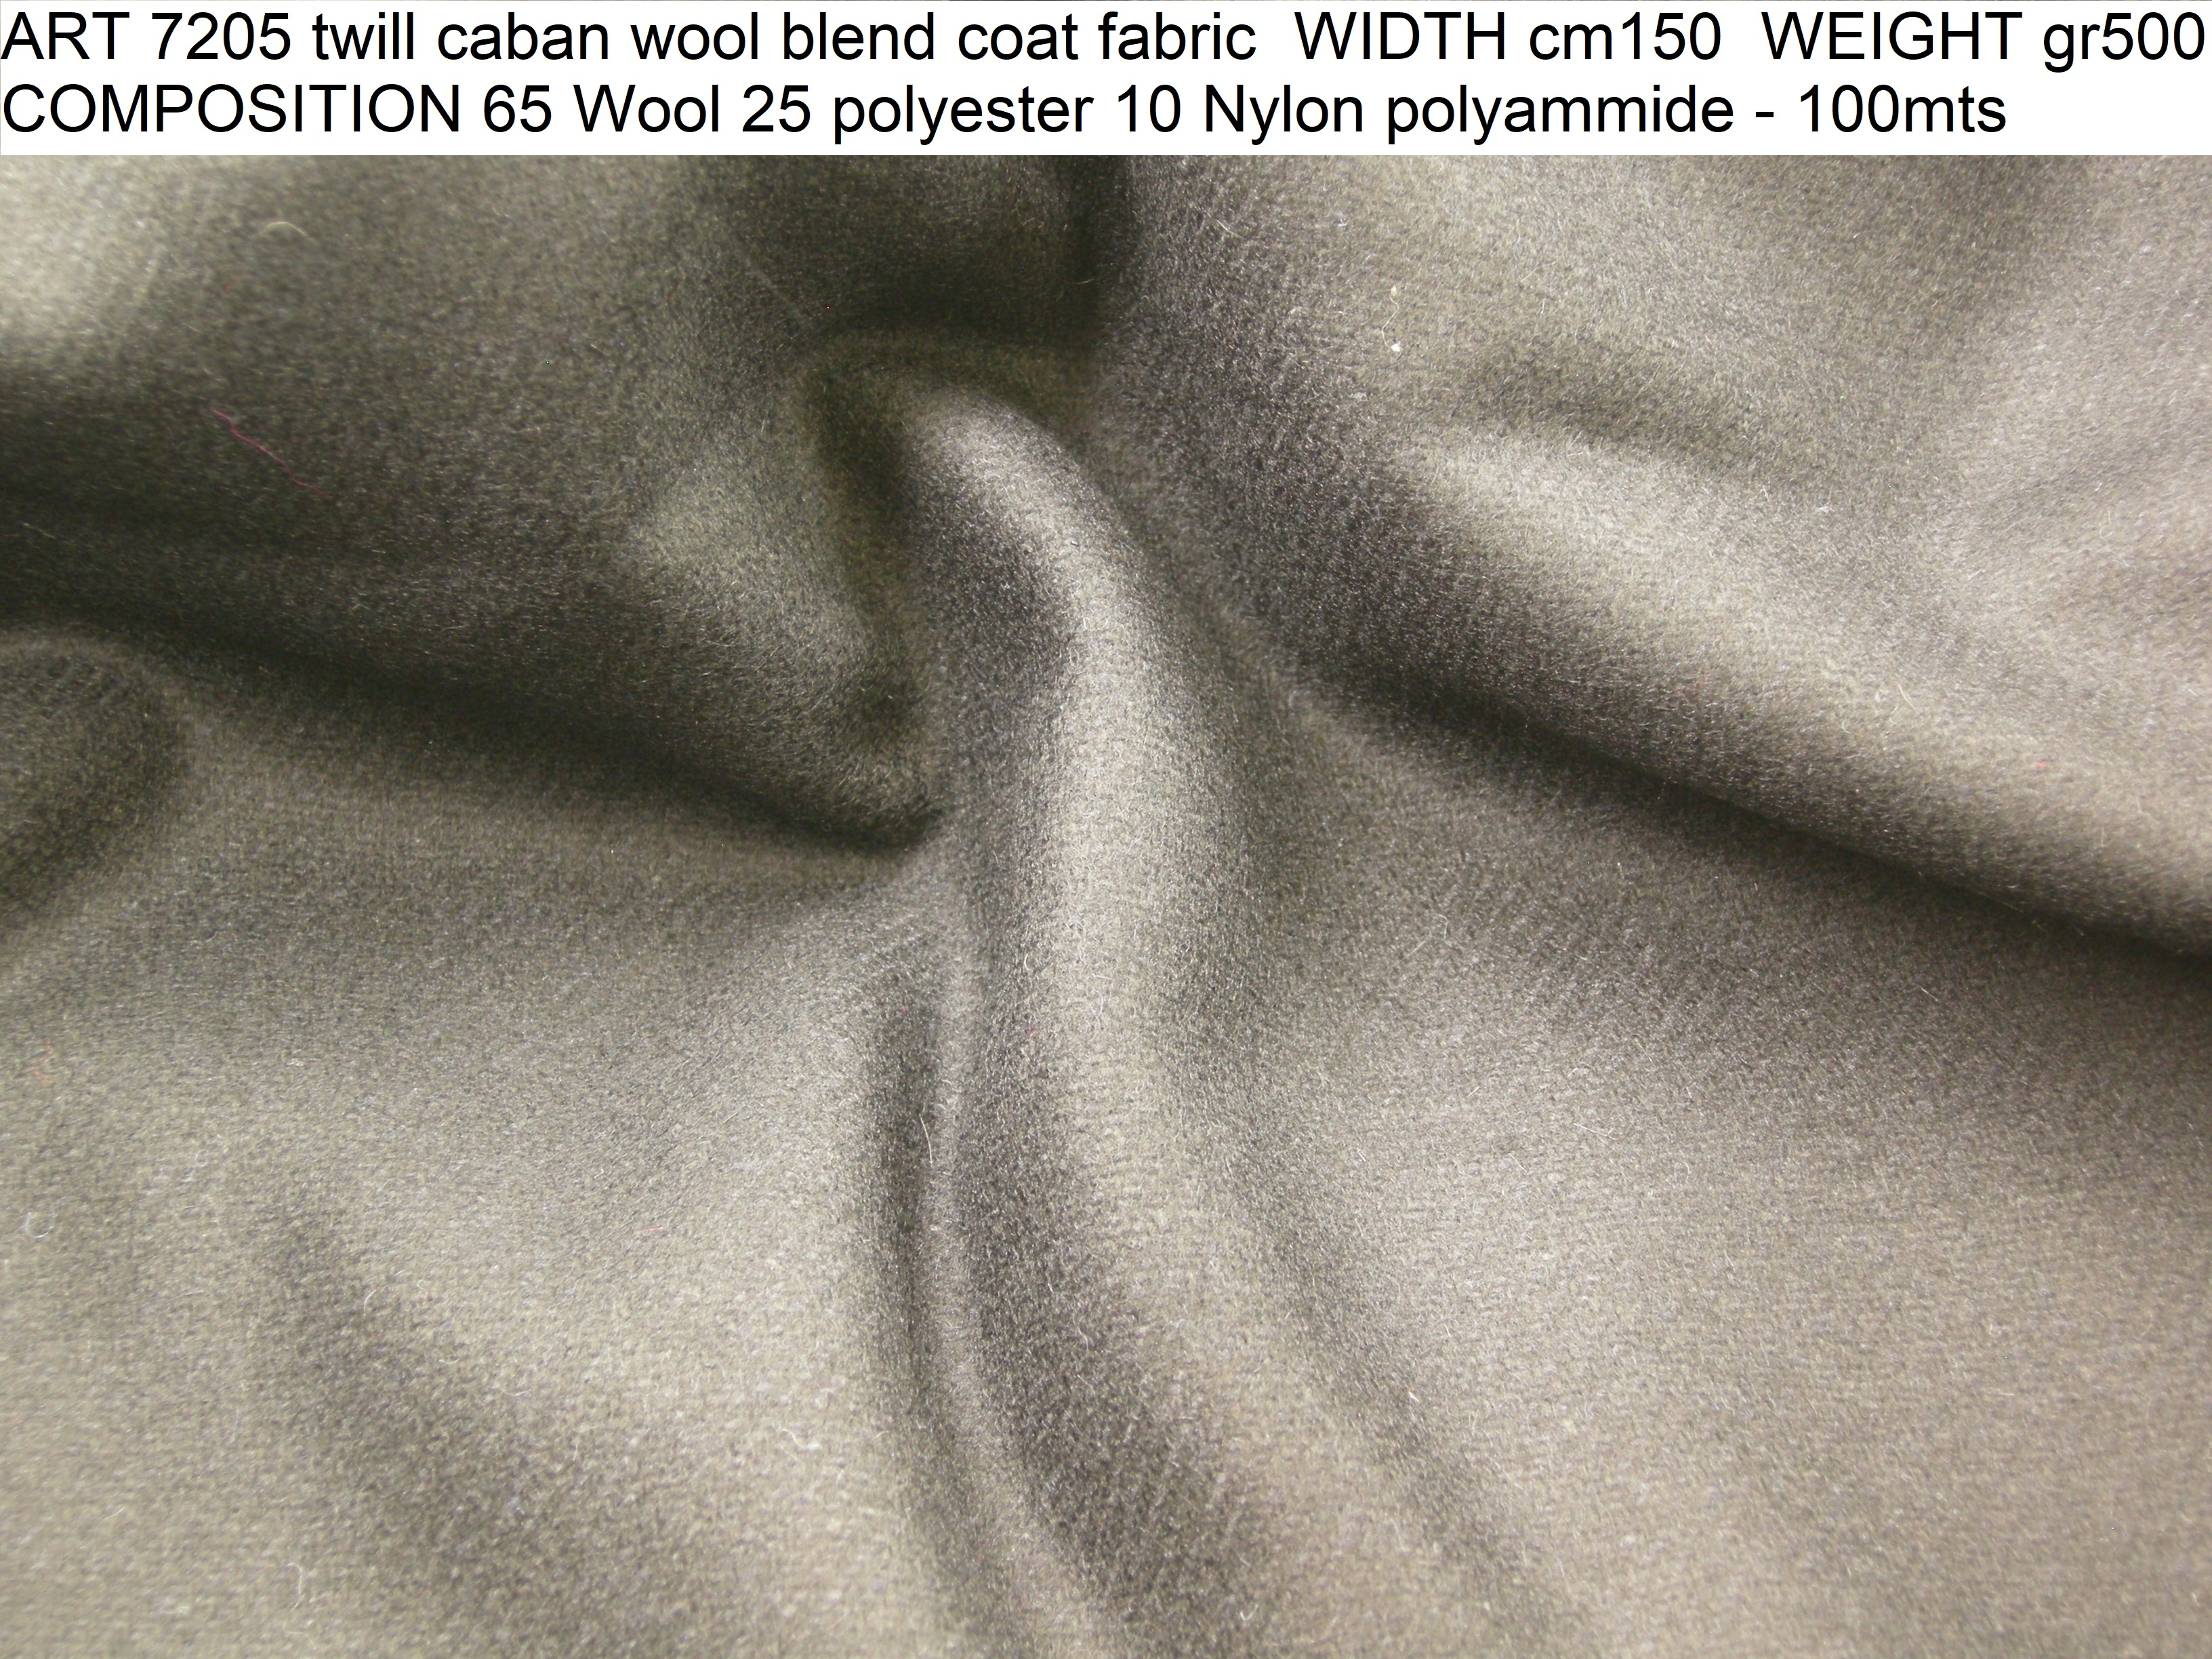 ART 7205 twill caban wool blend coat fabric WIDTH cm150 WEIGHT gr500 COMPOSITION 65 Wool 25 polyester 10 Nylon polyammide - 100mts